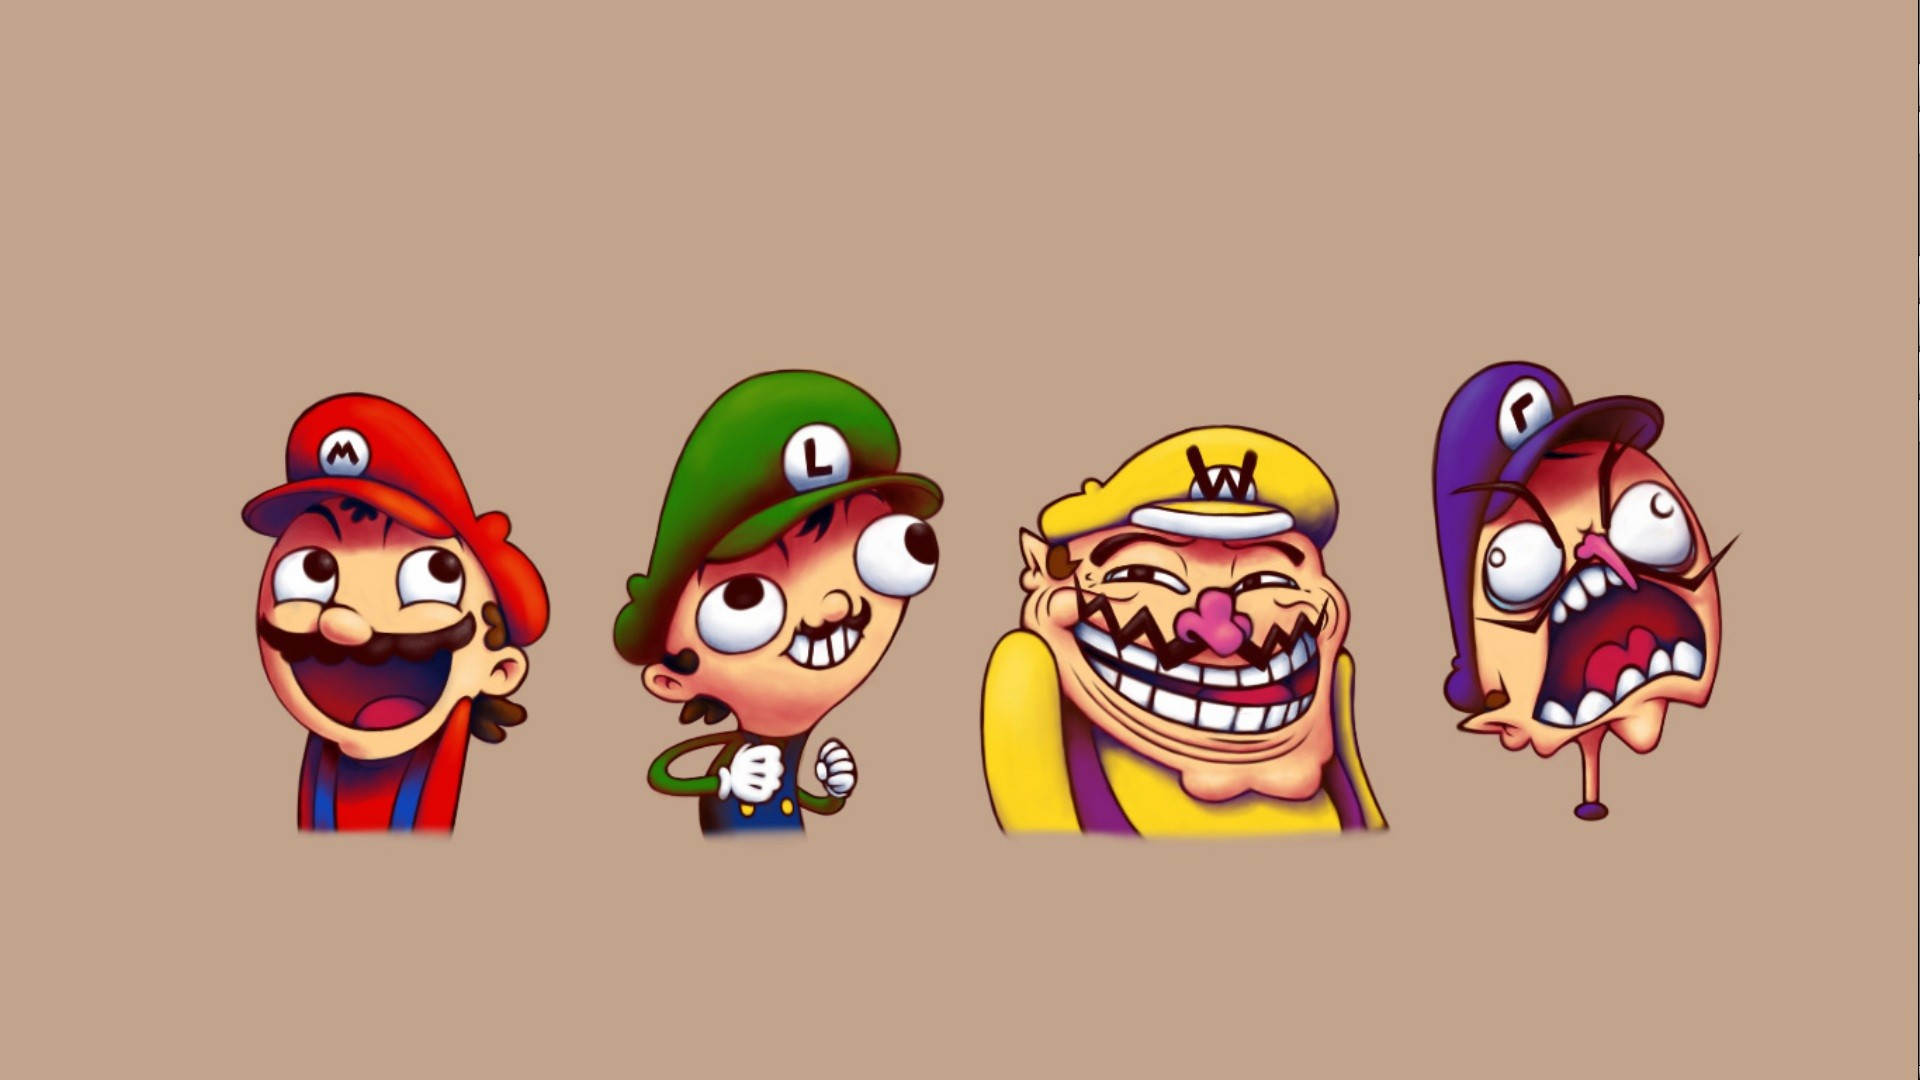 Download Meme Faces Super Mario HD Wallpaper 5004 Full Size 1920x1080